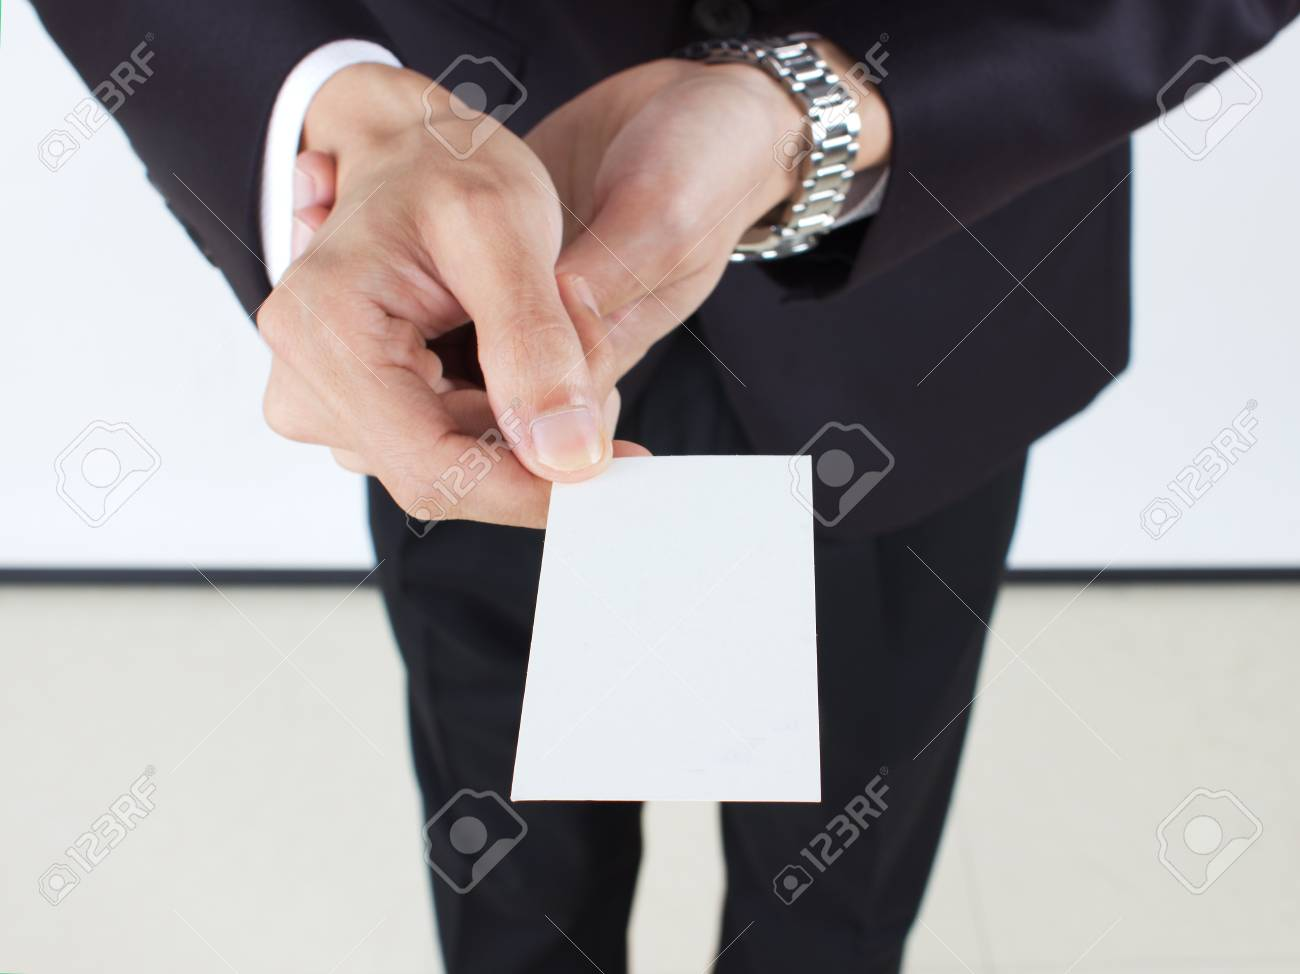 business man holding blank business card - 15513568